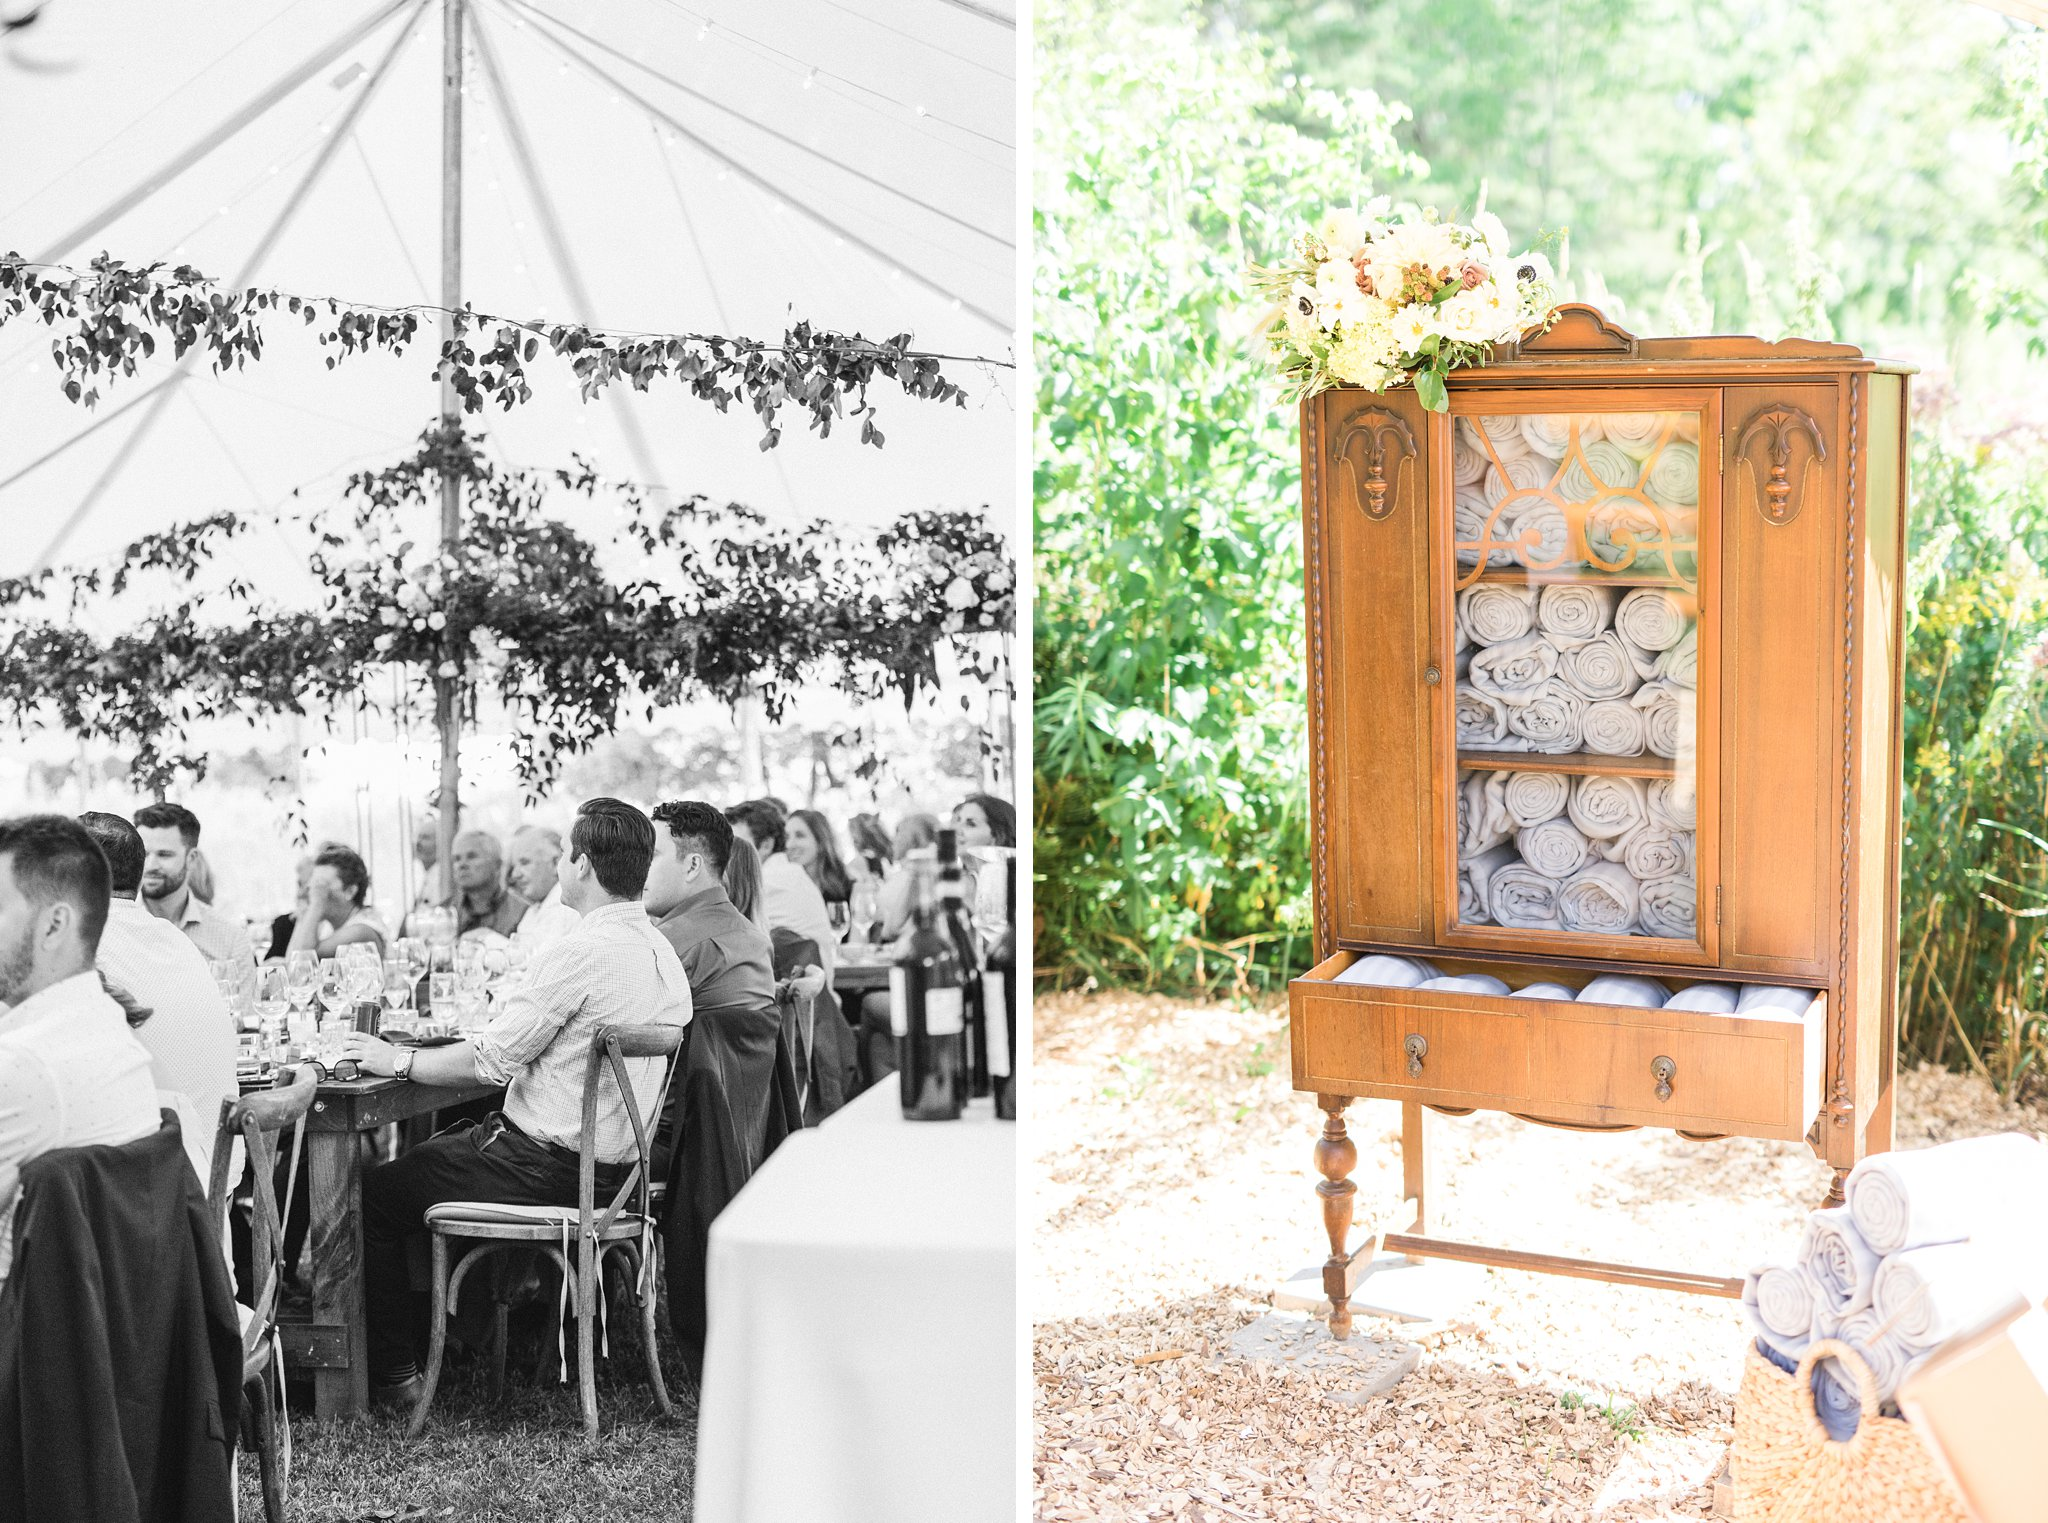 Blankets for guests, Private Estate Wedding Photos, Amy Pinder Photography